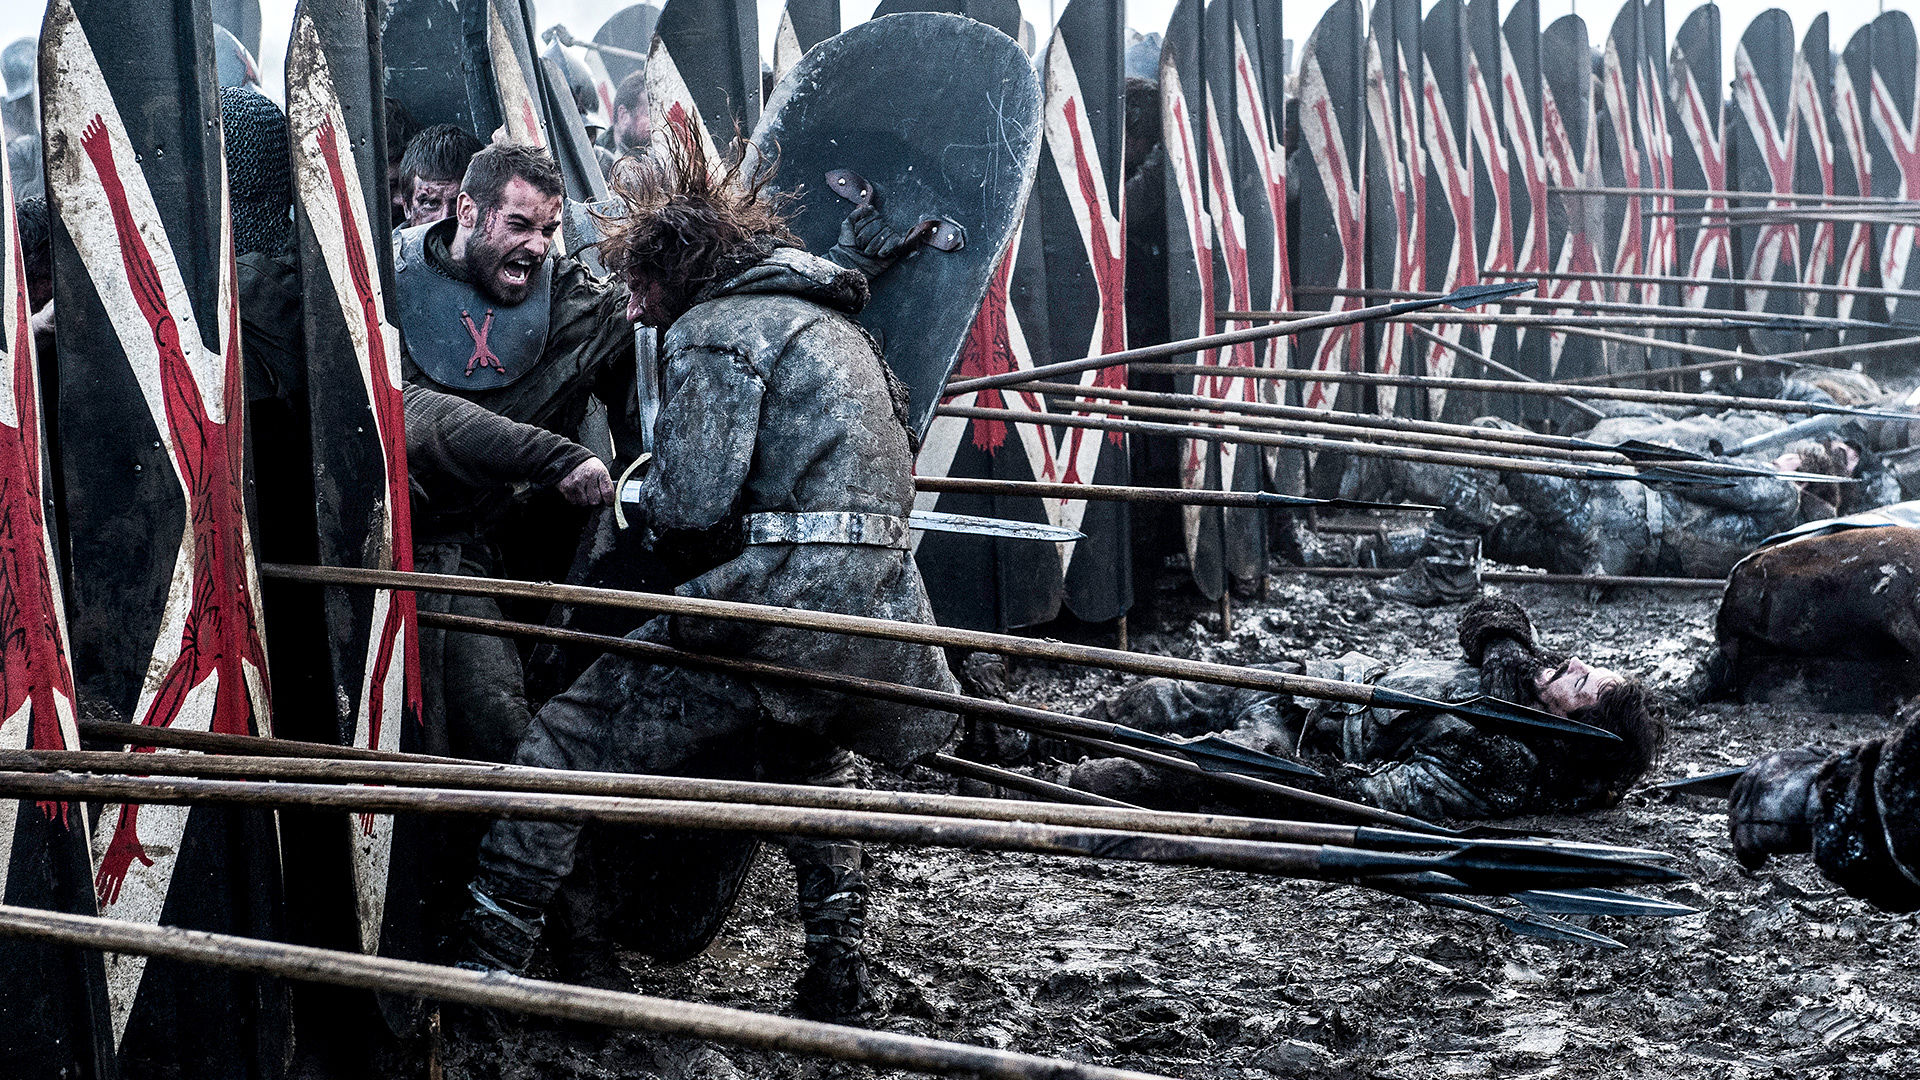 game-of-thrones-the-aftermath-of-the-battle-of-the-bastards-1024975